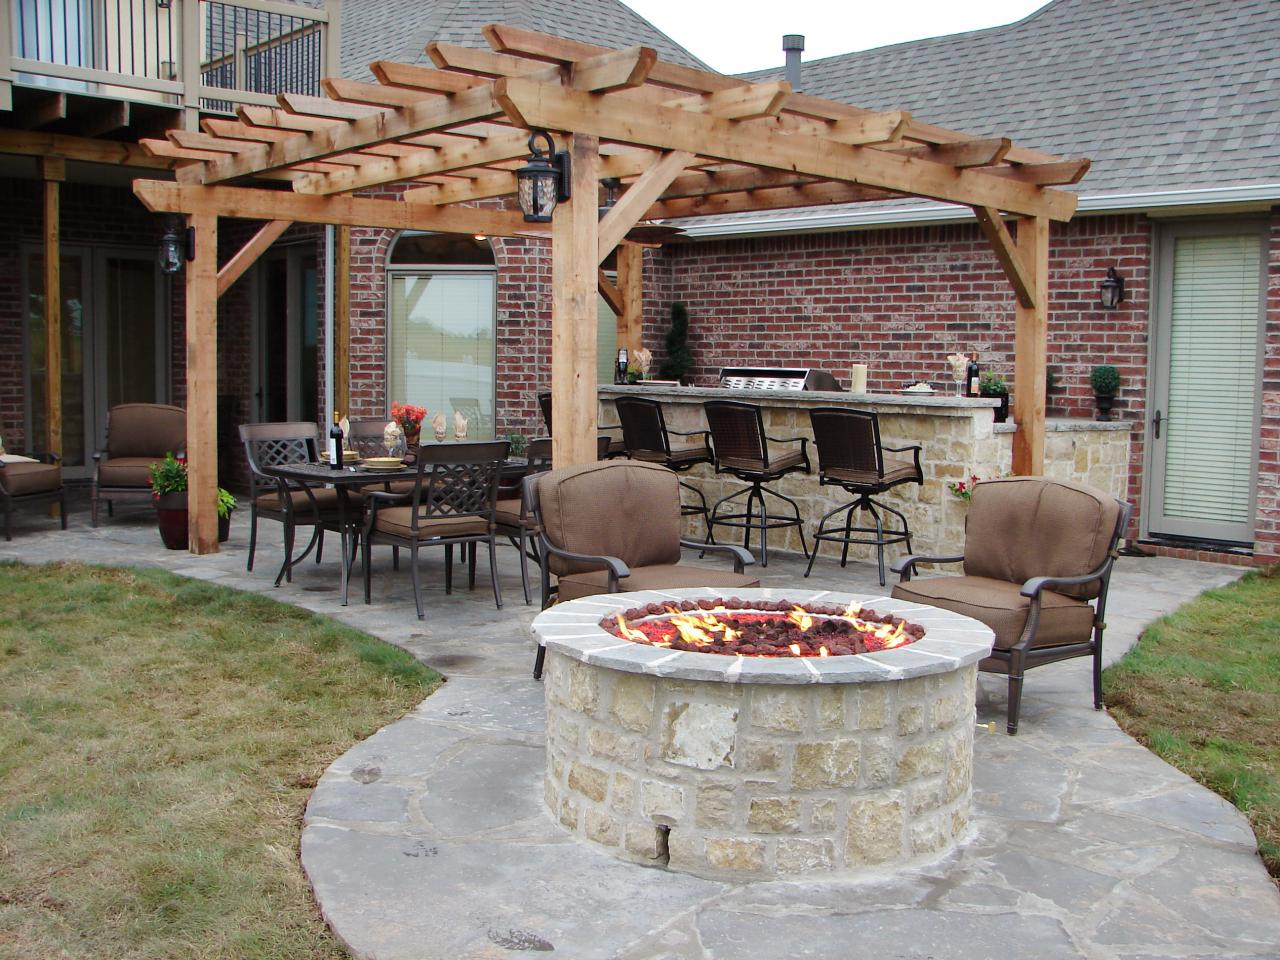 66 fire pit and outdoor fireplace ideas diy network blog for Outdoor patio fireplace ideas